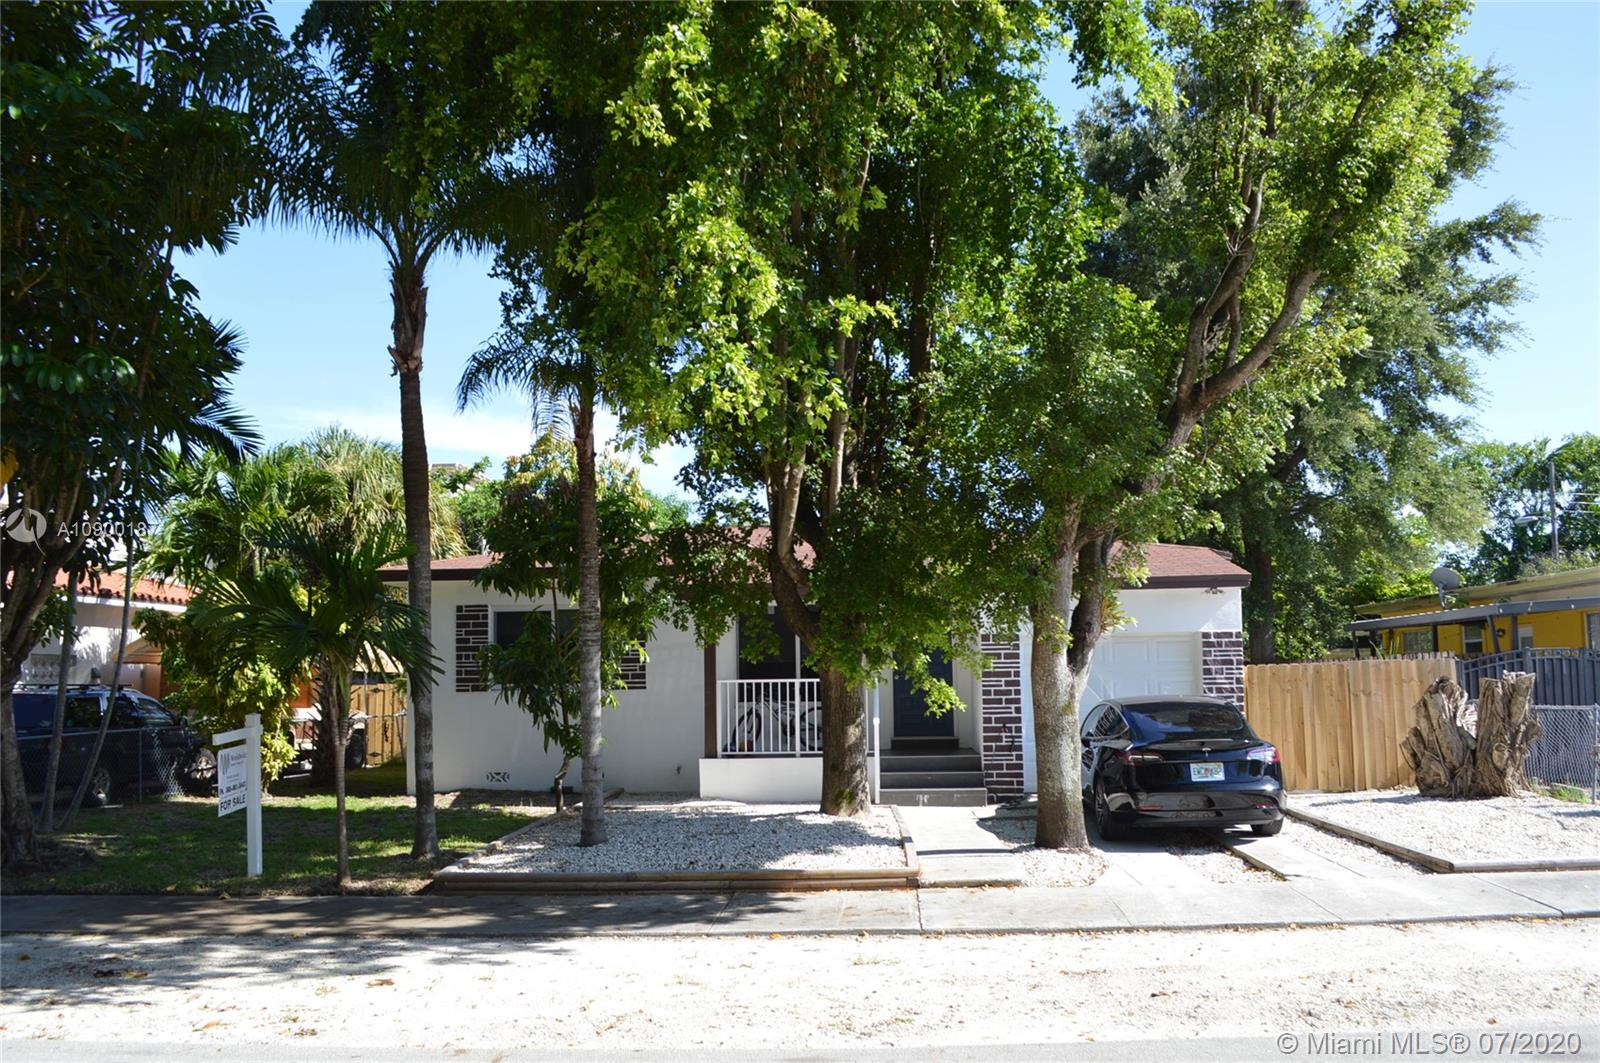 Beautiful house completely remodel 3 bedrooms and 2 bathrooms plus One car Garage. Centrally located between Coral Gables and Coconut Grove. The house is been updated from top to bottom. New roof, new appliances, impact windows, new A/C, tile and wood flooring throughout.